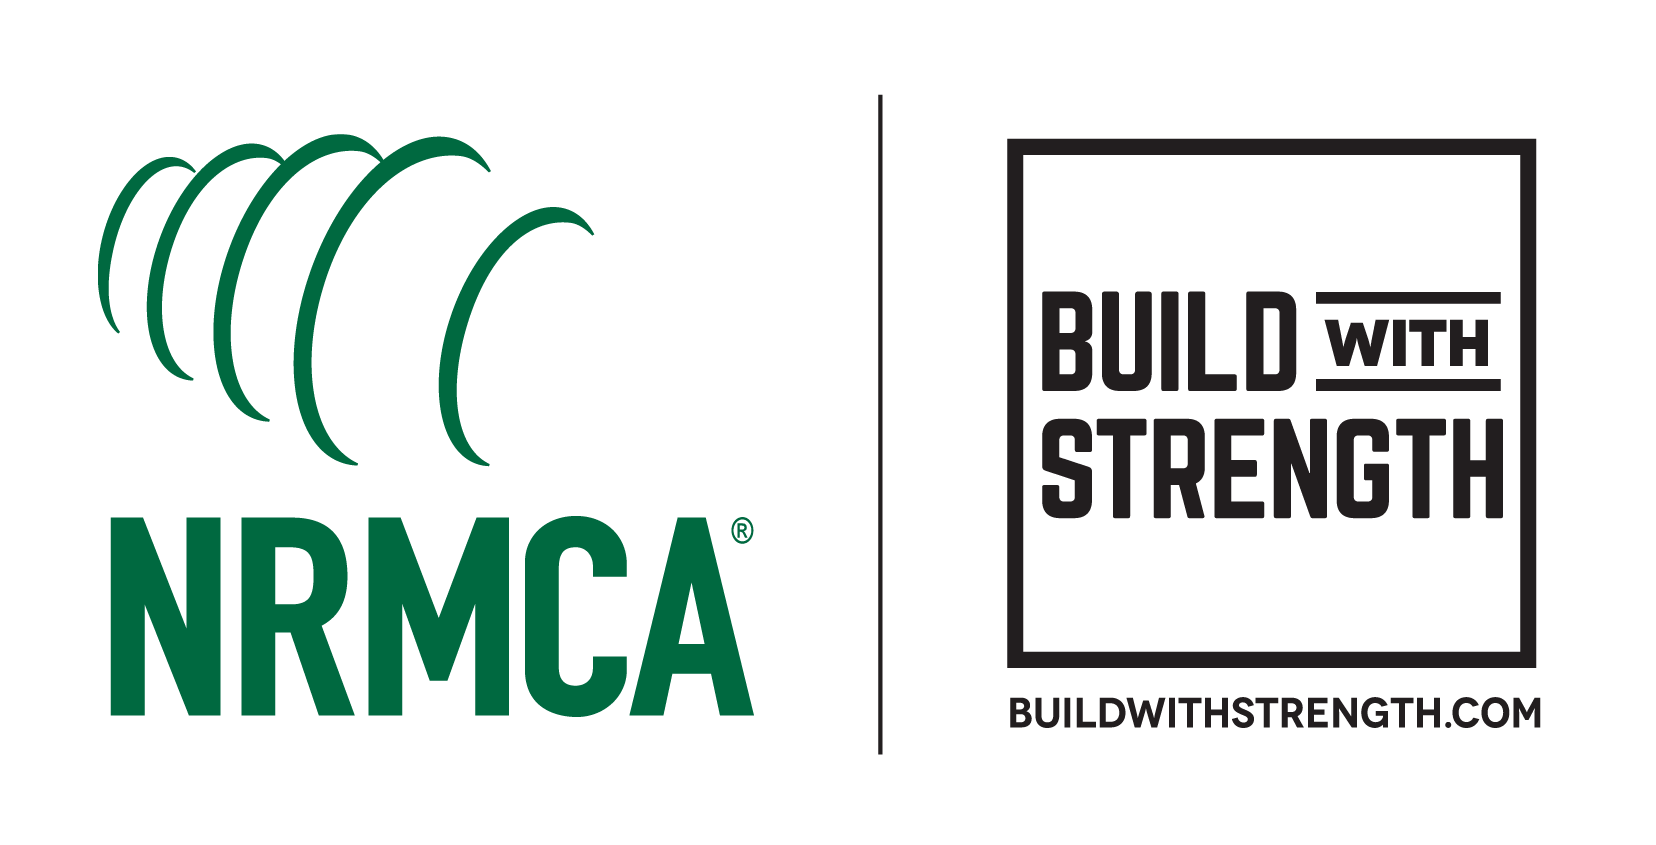 Build with Strength, a coalition of the National Ready Mixed Concrete Association